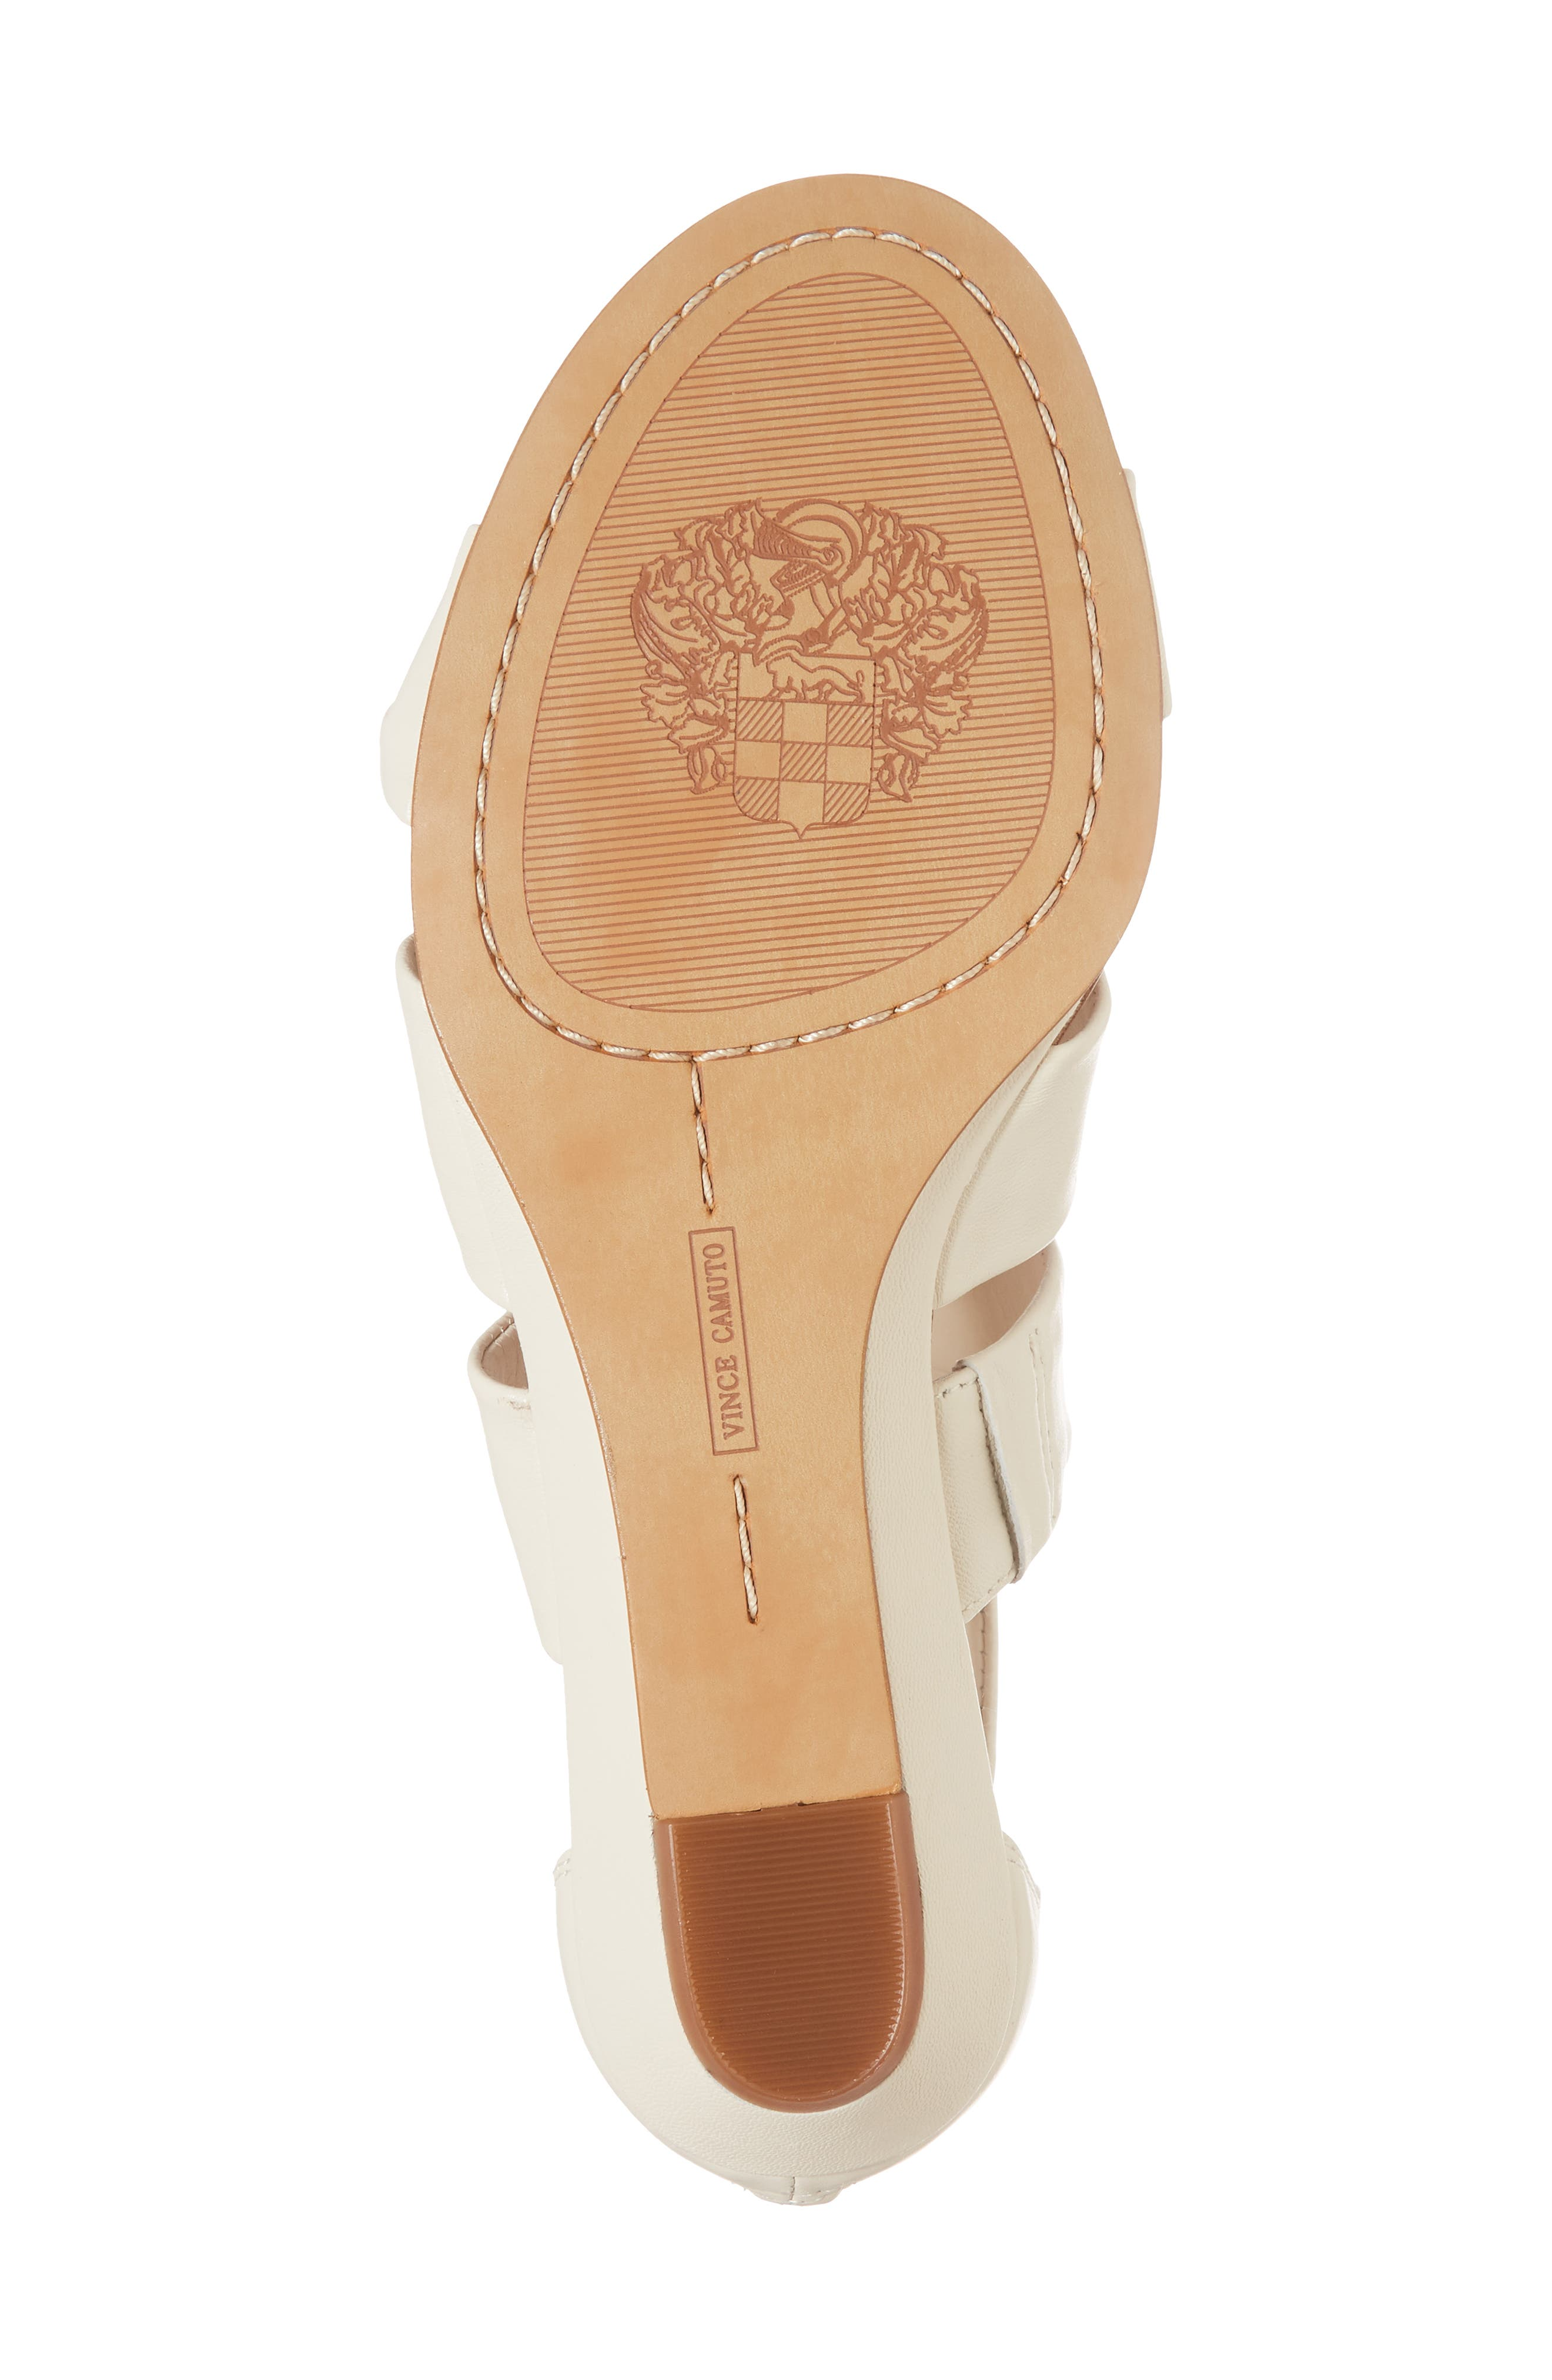 Seevina Low Wedge Sandal,                             Alternate thumbnail 6, color,                             Vanilla Leather